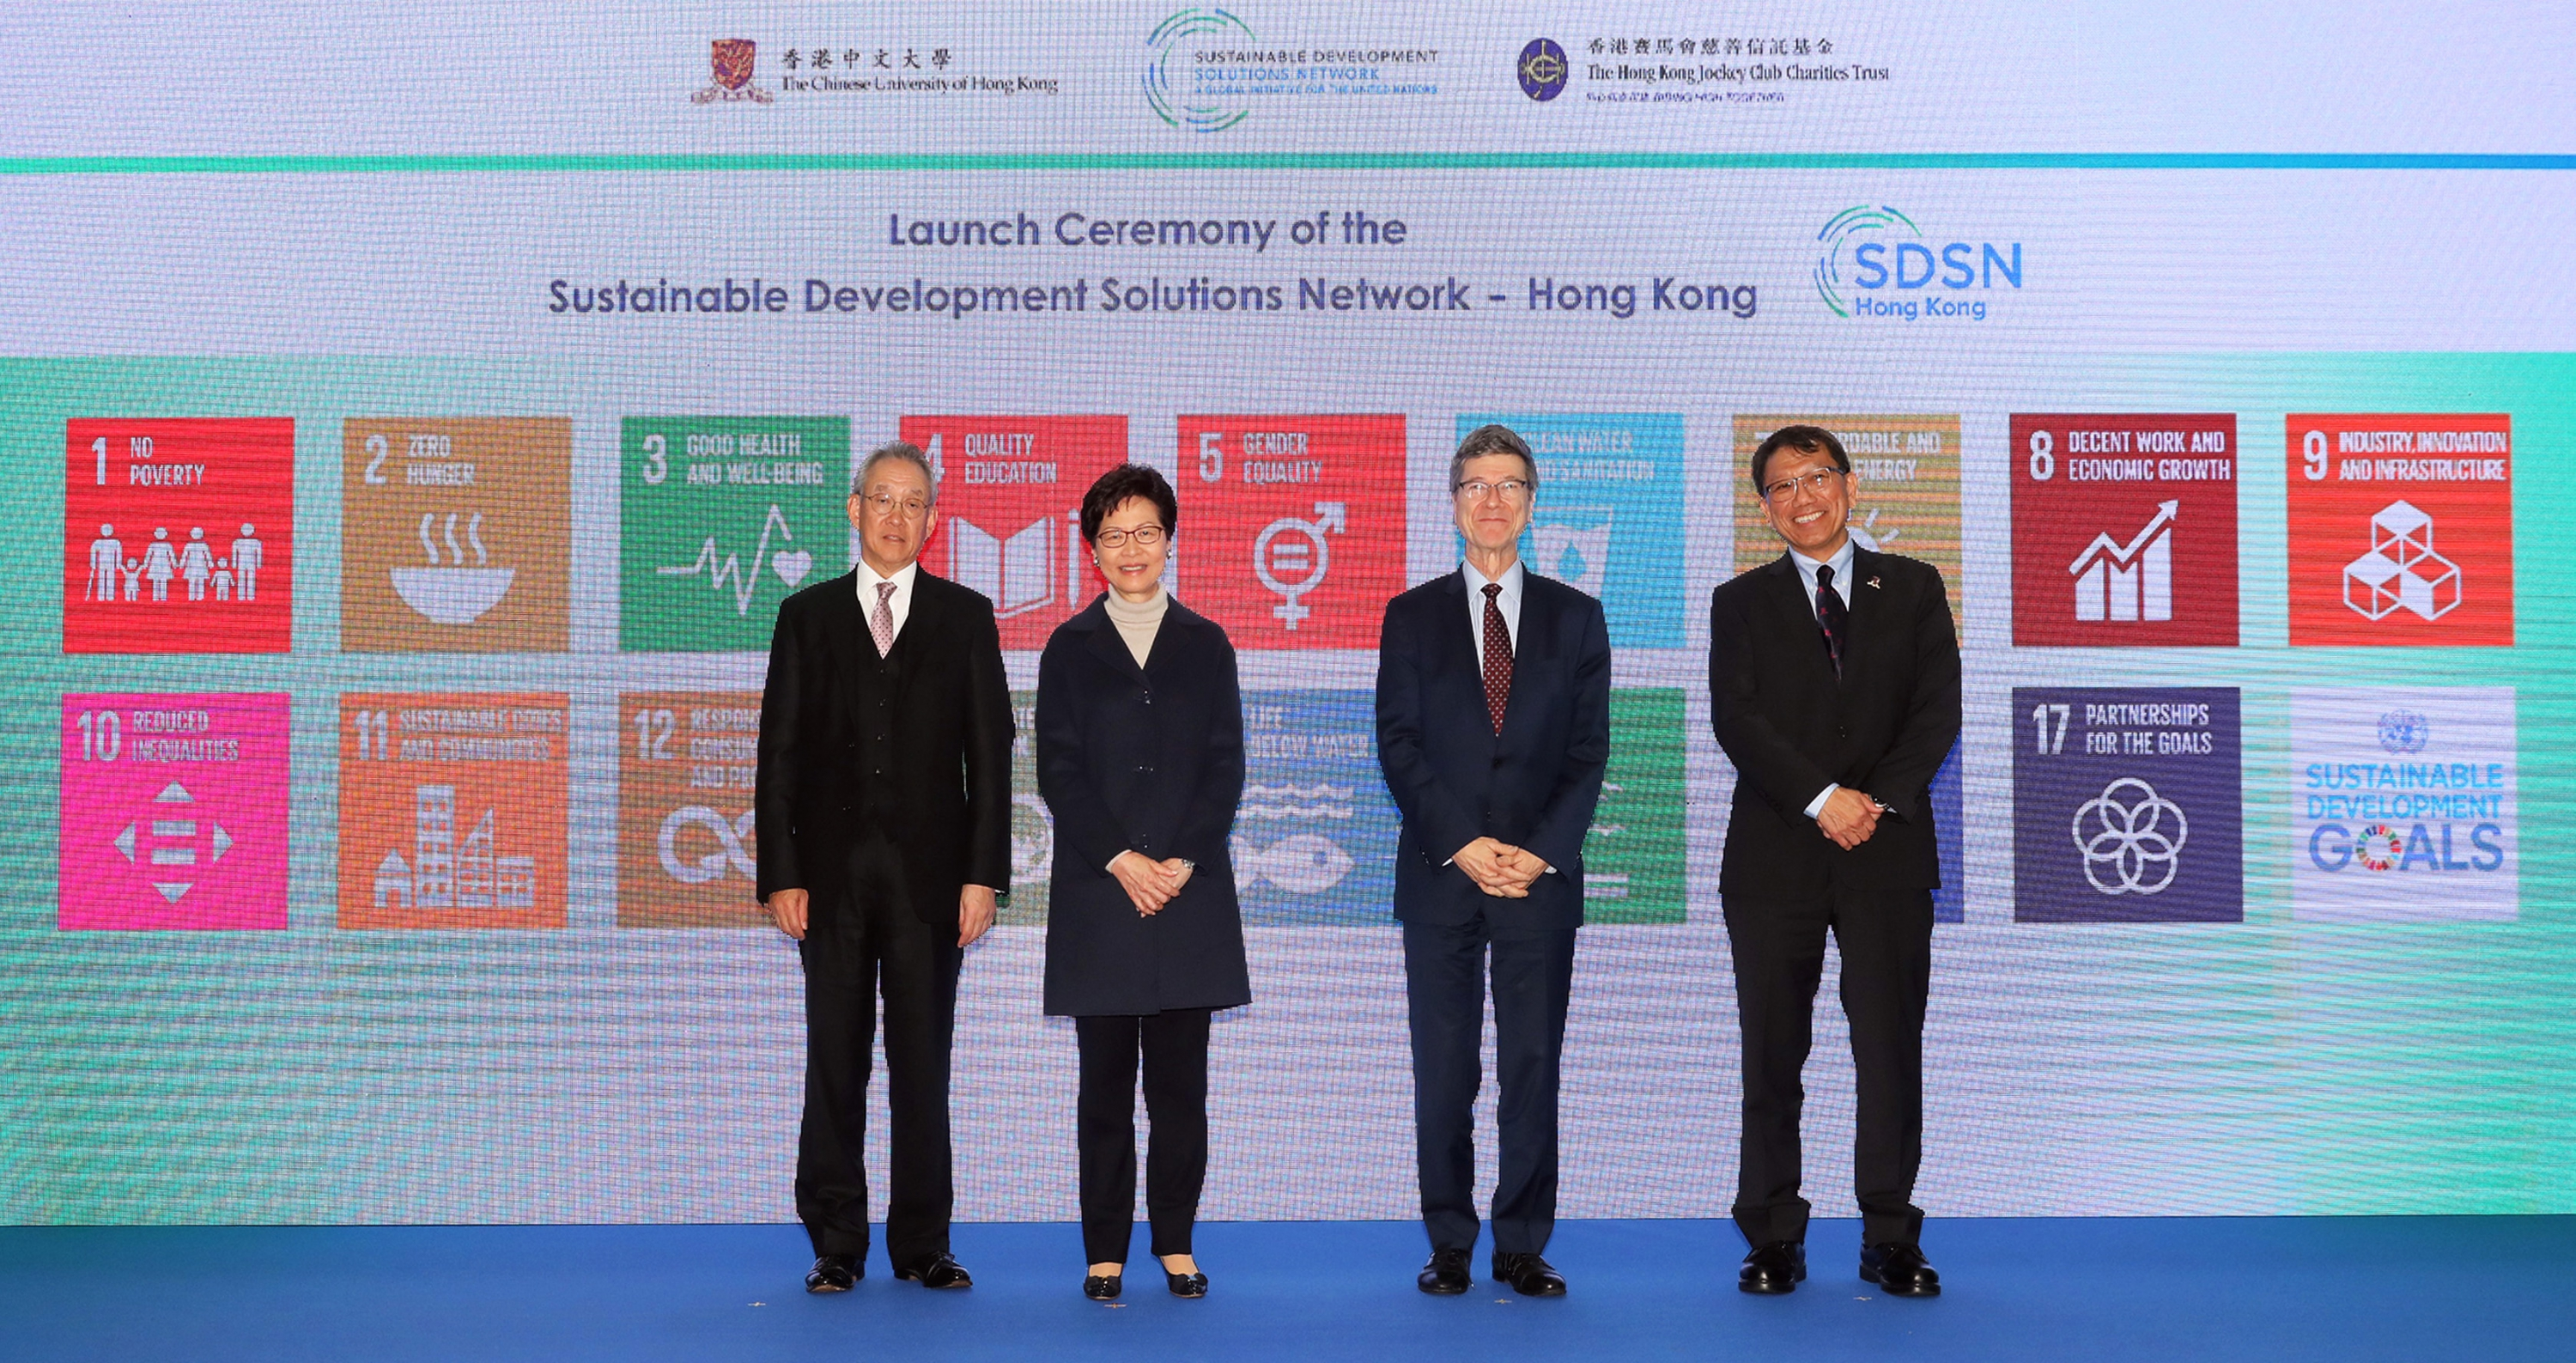 Officiating at the launch ceremony of the Sustainable Development Solutions Network Hong Kong are The Chief Executive of the Hong Kong Special Administrative Region Mrs Carrie Lam Cheng Yuet-ngor (2nd left); Director of the UN SDSN Professor Jeffrey Sachs (2nd right); Deputy Chairman of The Hong Kong Jockey Club Mr Anthony W K Chow (1st left), and Vice-Chancellor and President of CUHK Professor Rocky S Tuan (1st right)